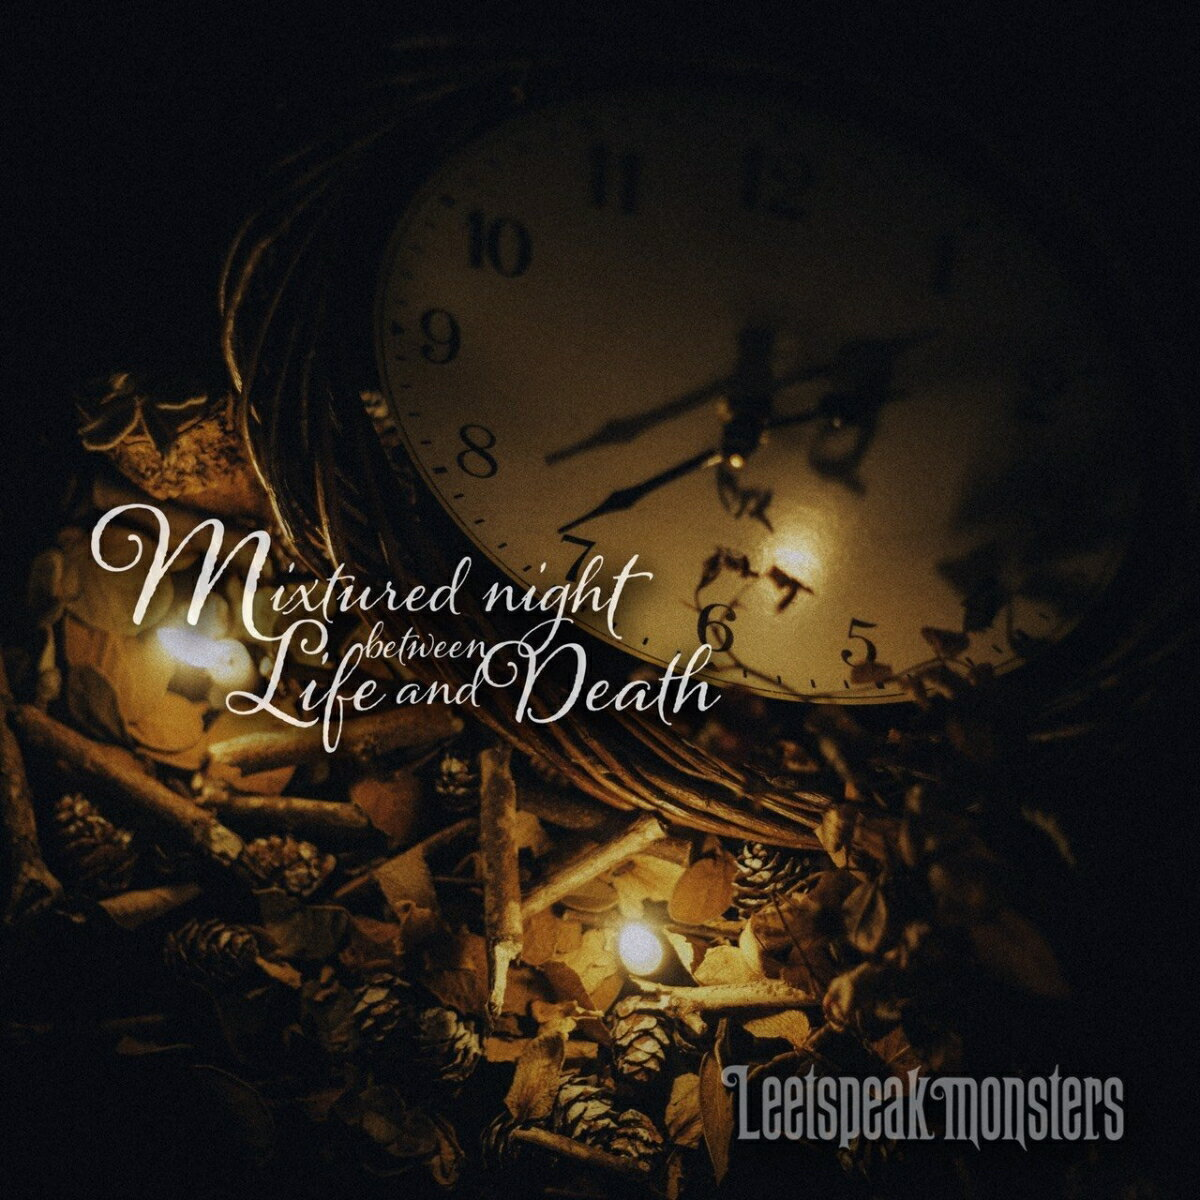 Mixtured night between Life and Death (初回限定盤 CD+DVD)画像